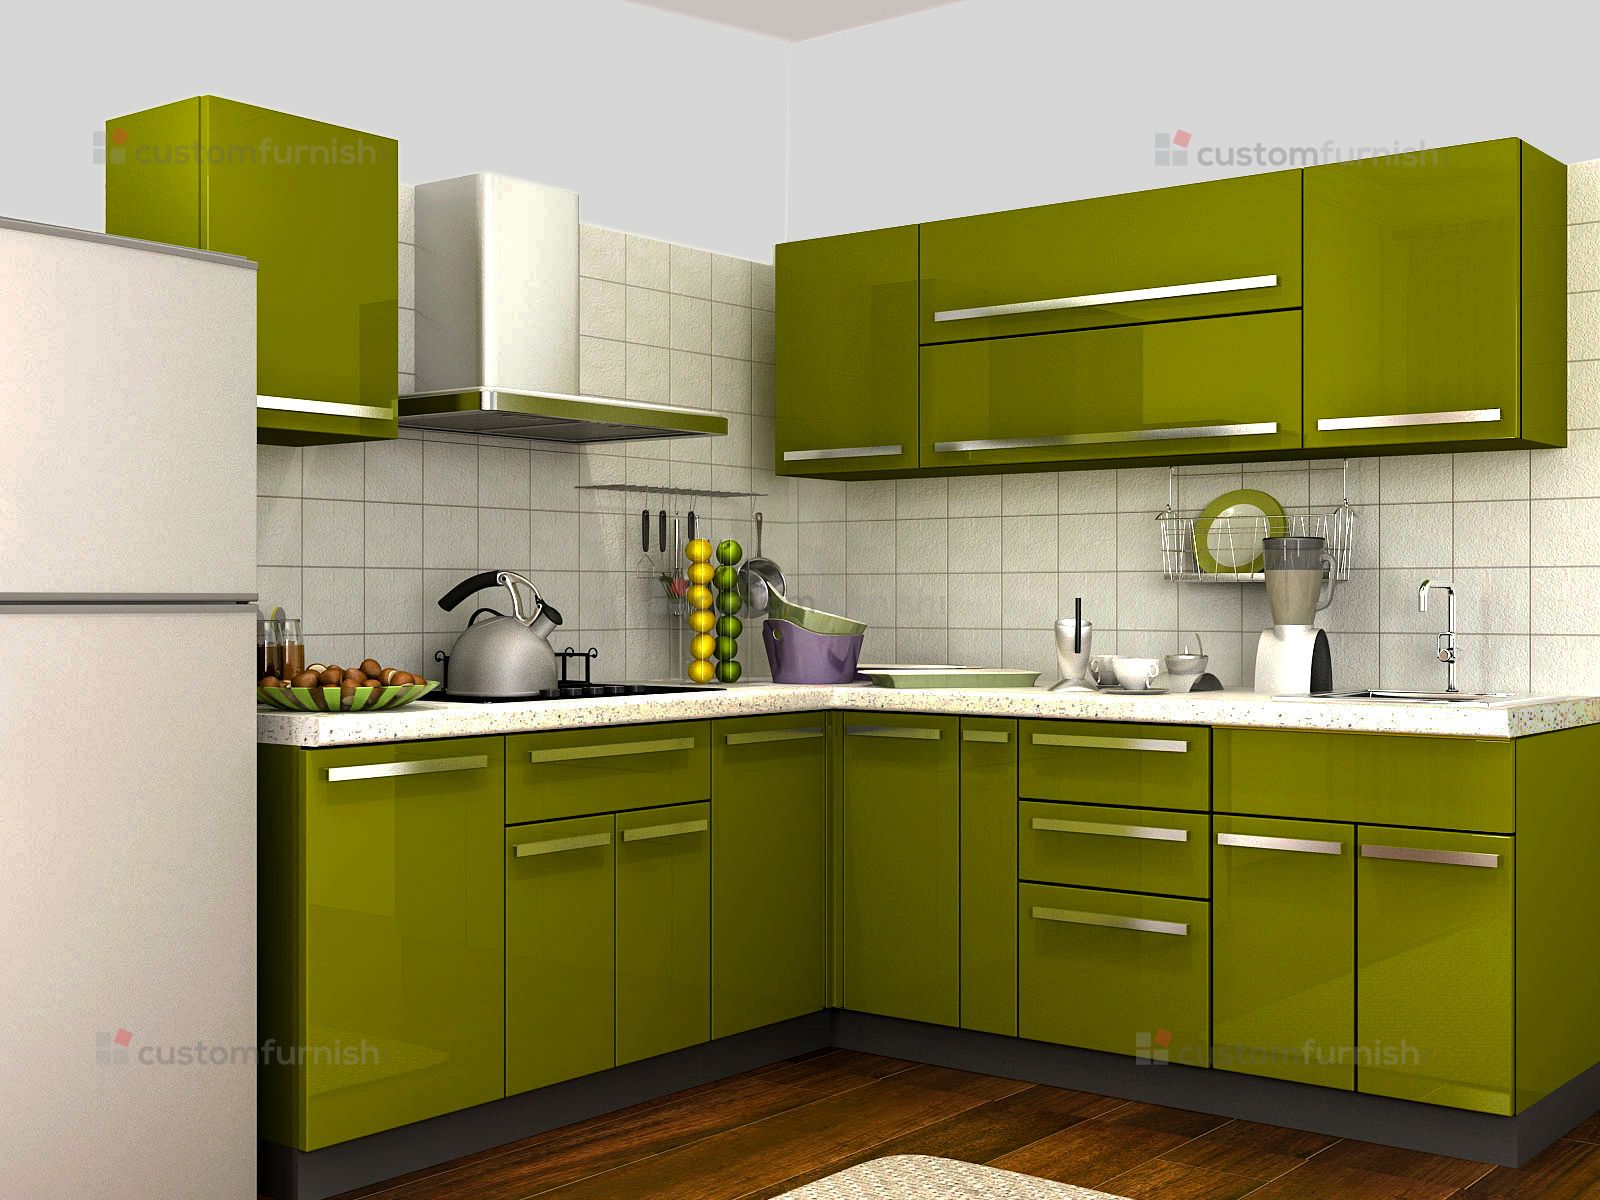 Kitchen Designing Online Customfurnish L Shaped Green Kitchen  Modular Kitchen